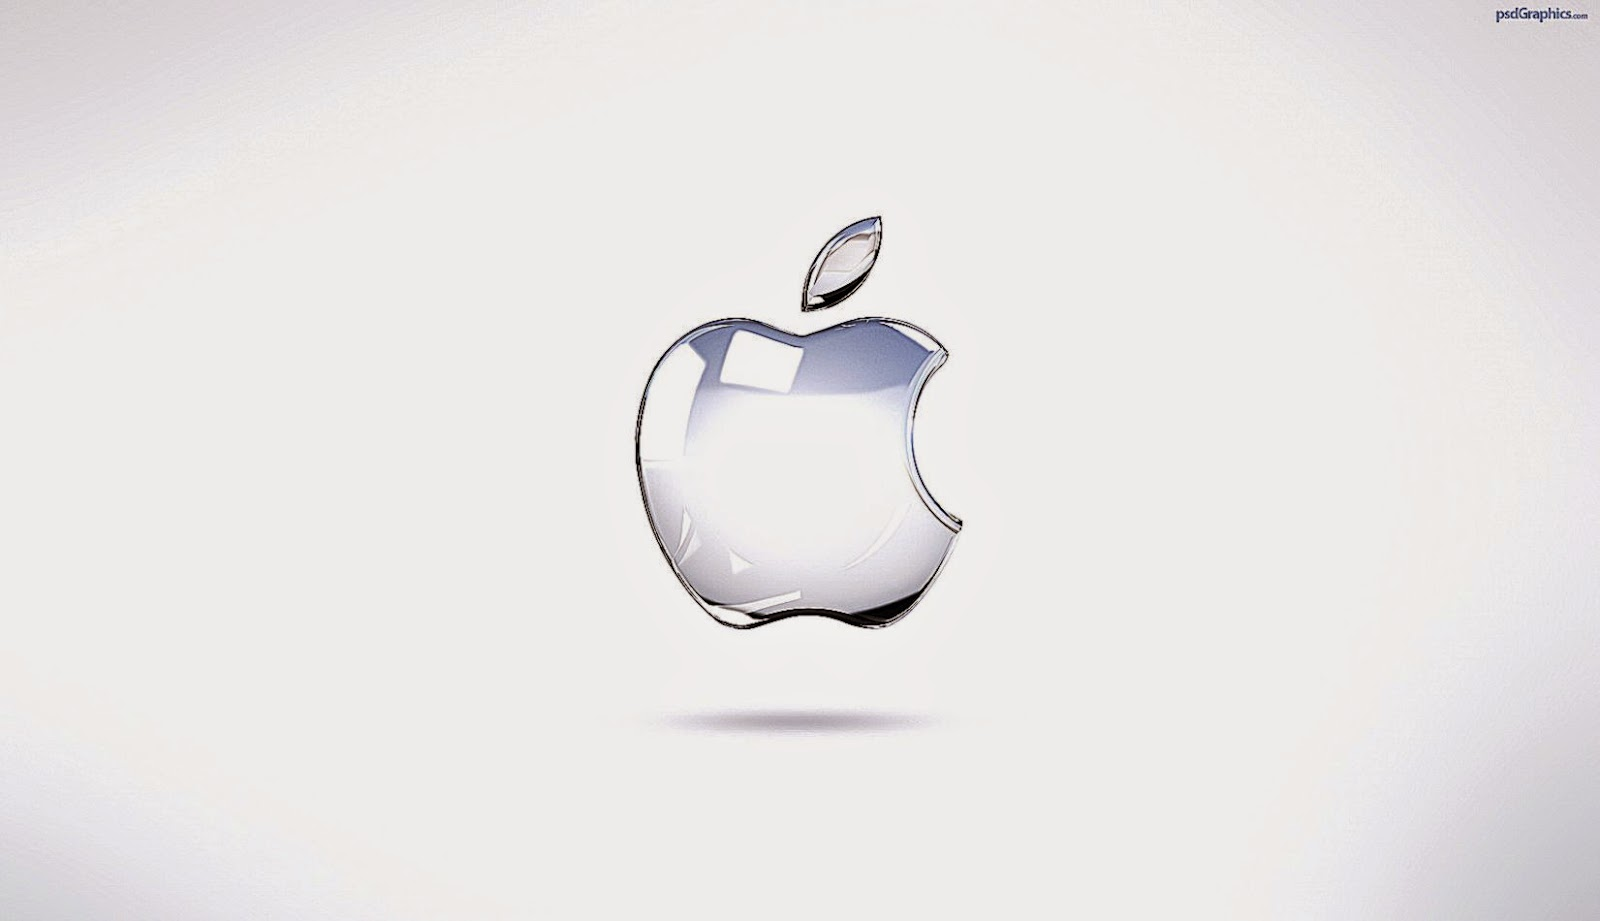 Apple High Resolution Wallpaper For Desktop